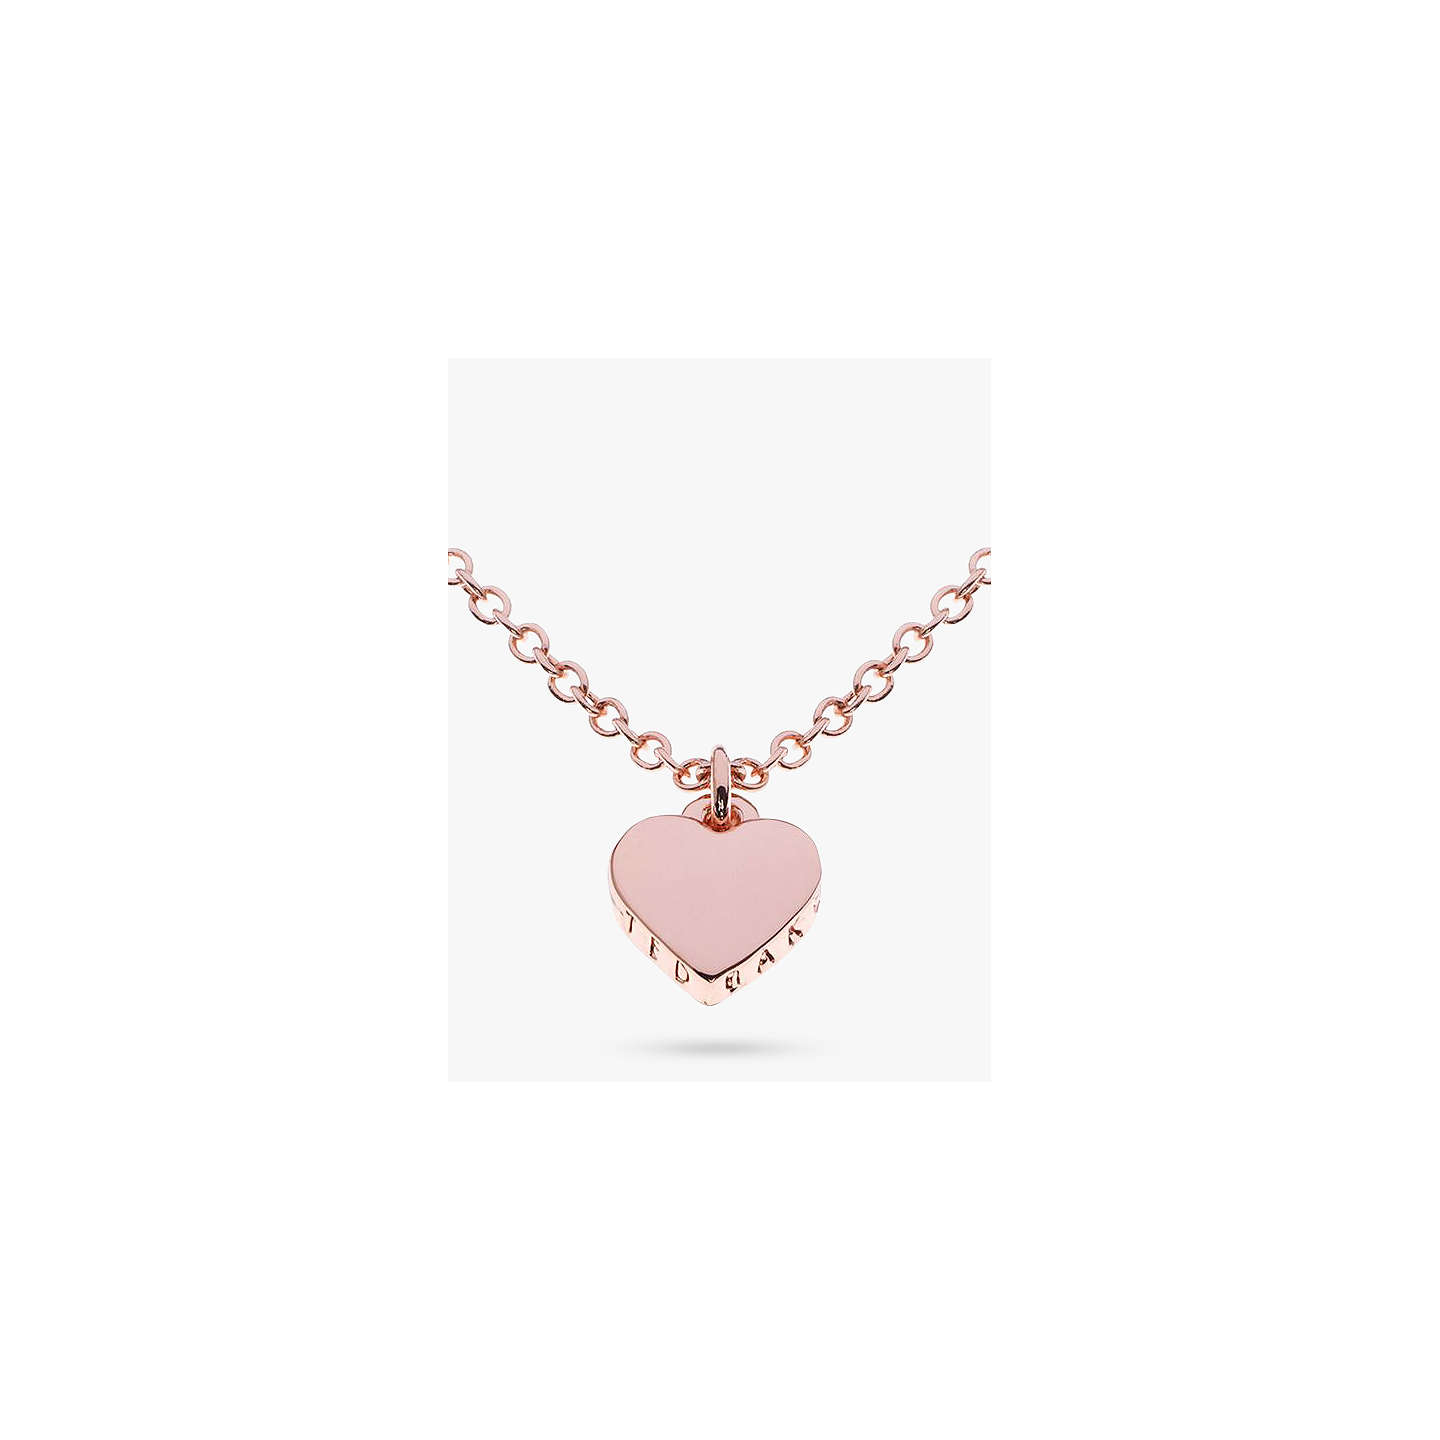 Ted baker hara tiny heart pendant necklace at john lewis buyted baker hara tiny heart pendant rose gold online at johnlewis mozeypictures Gallery